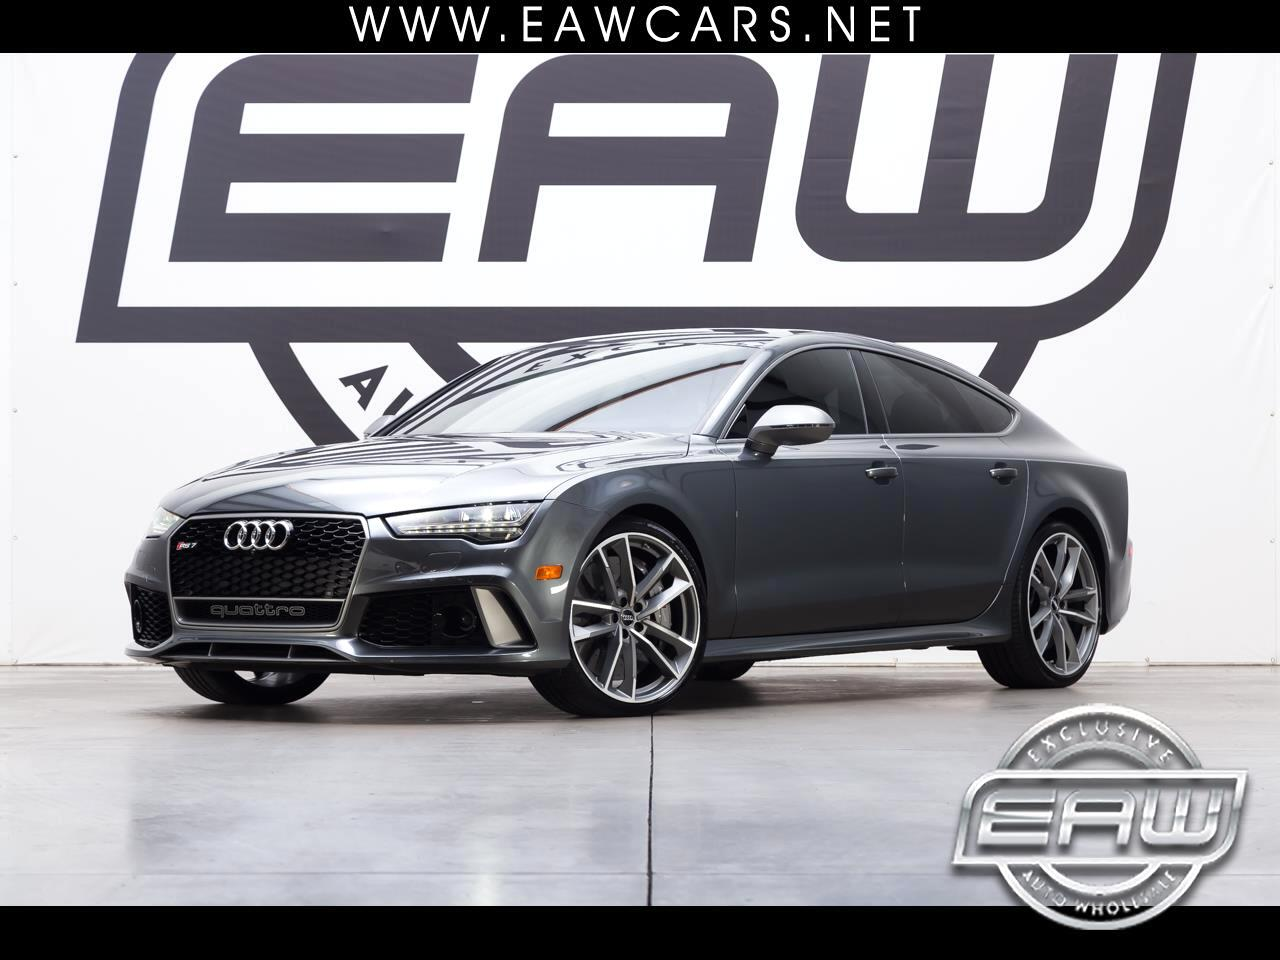 2017 Audi RS7 PERFORMANCE QUATTRO TITANIUM EDITION 1 OF 50